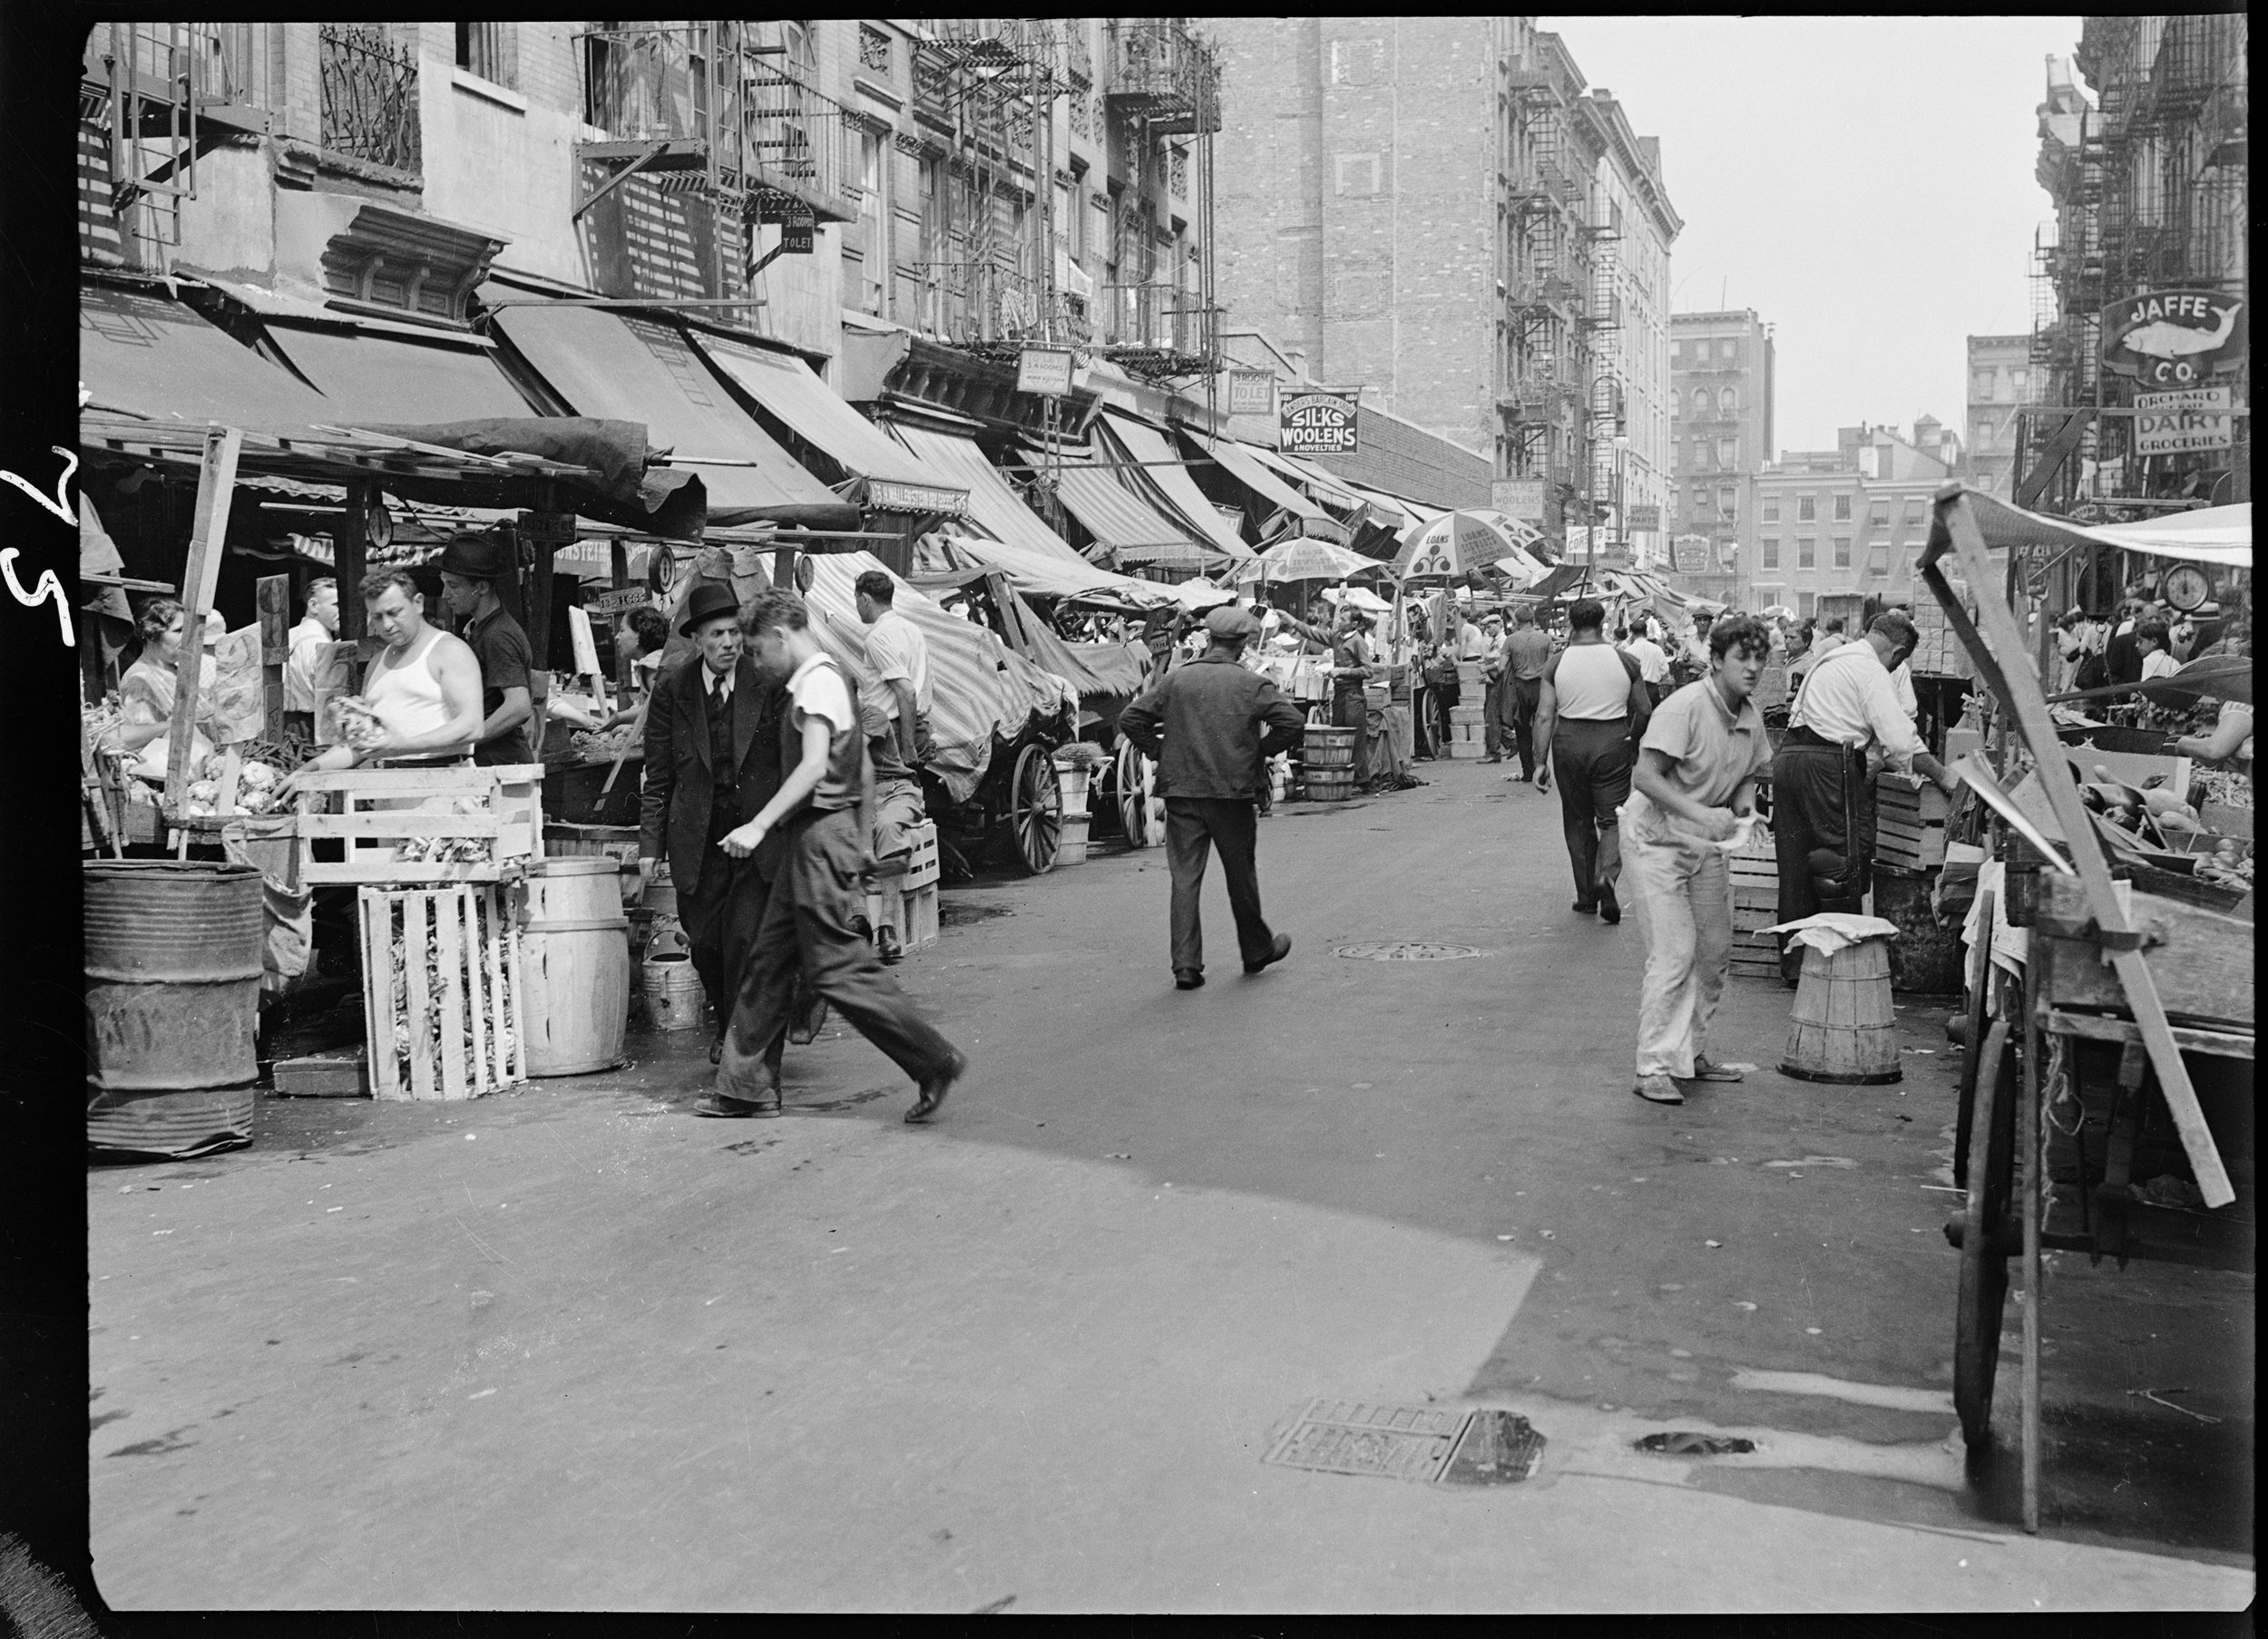 Sidewalk Pushcart Market, Mulberry Street, ca. 1937. Photographer unknown, WPA Federal Writers' Project collection, NYC Municipal Archives.